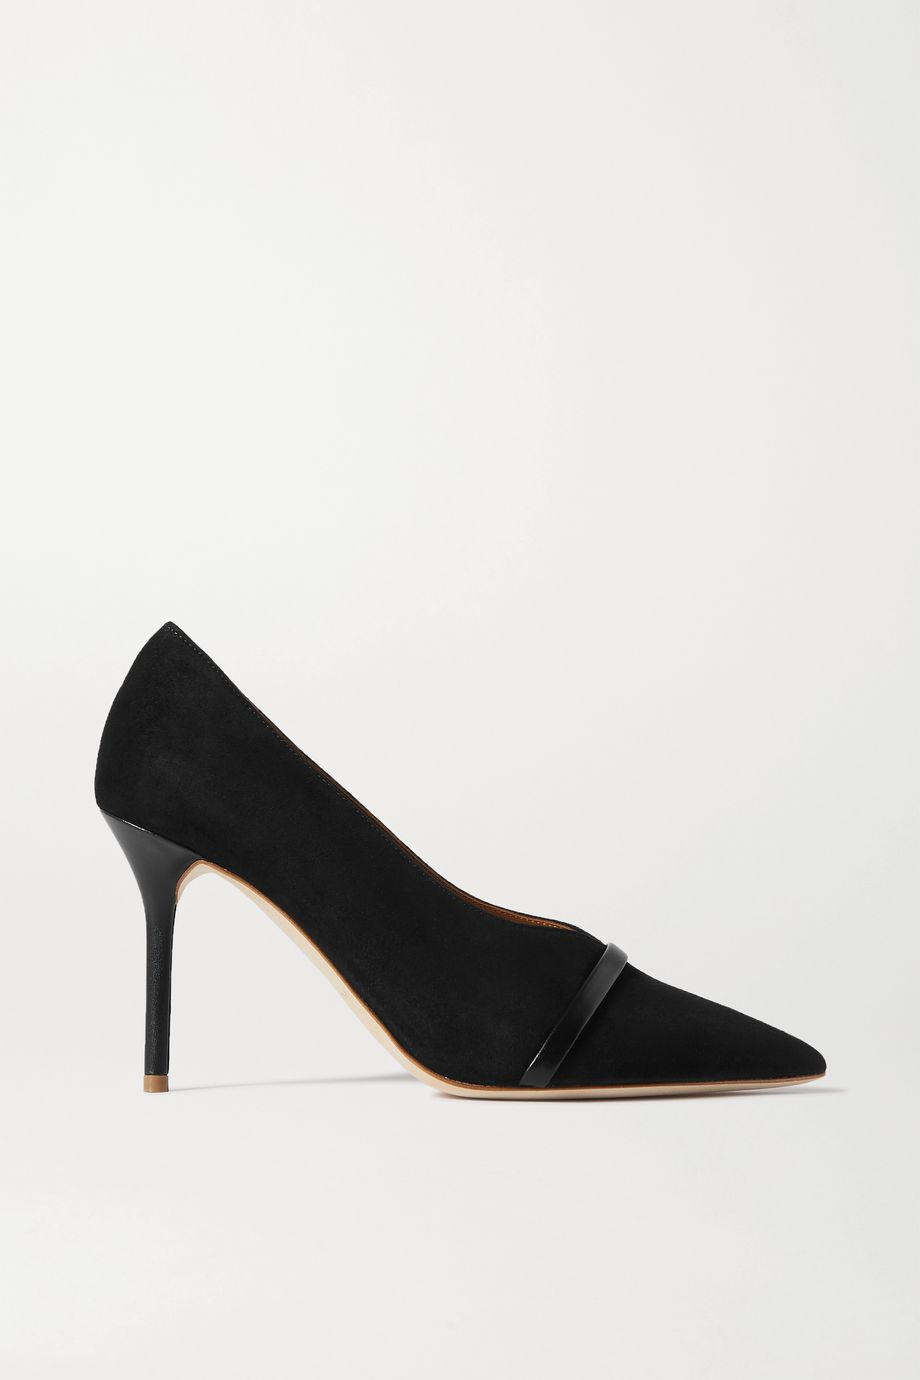 Malone Souliers Constance 85 leather-trimmed suede pumps